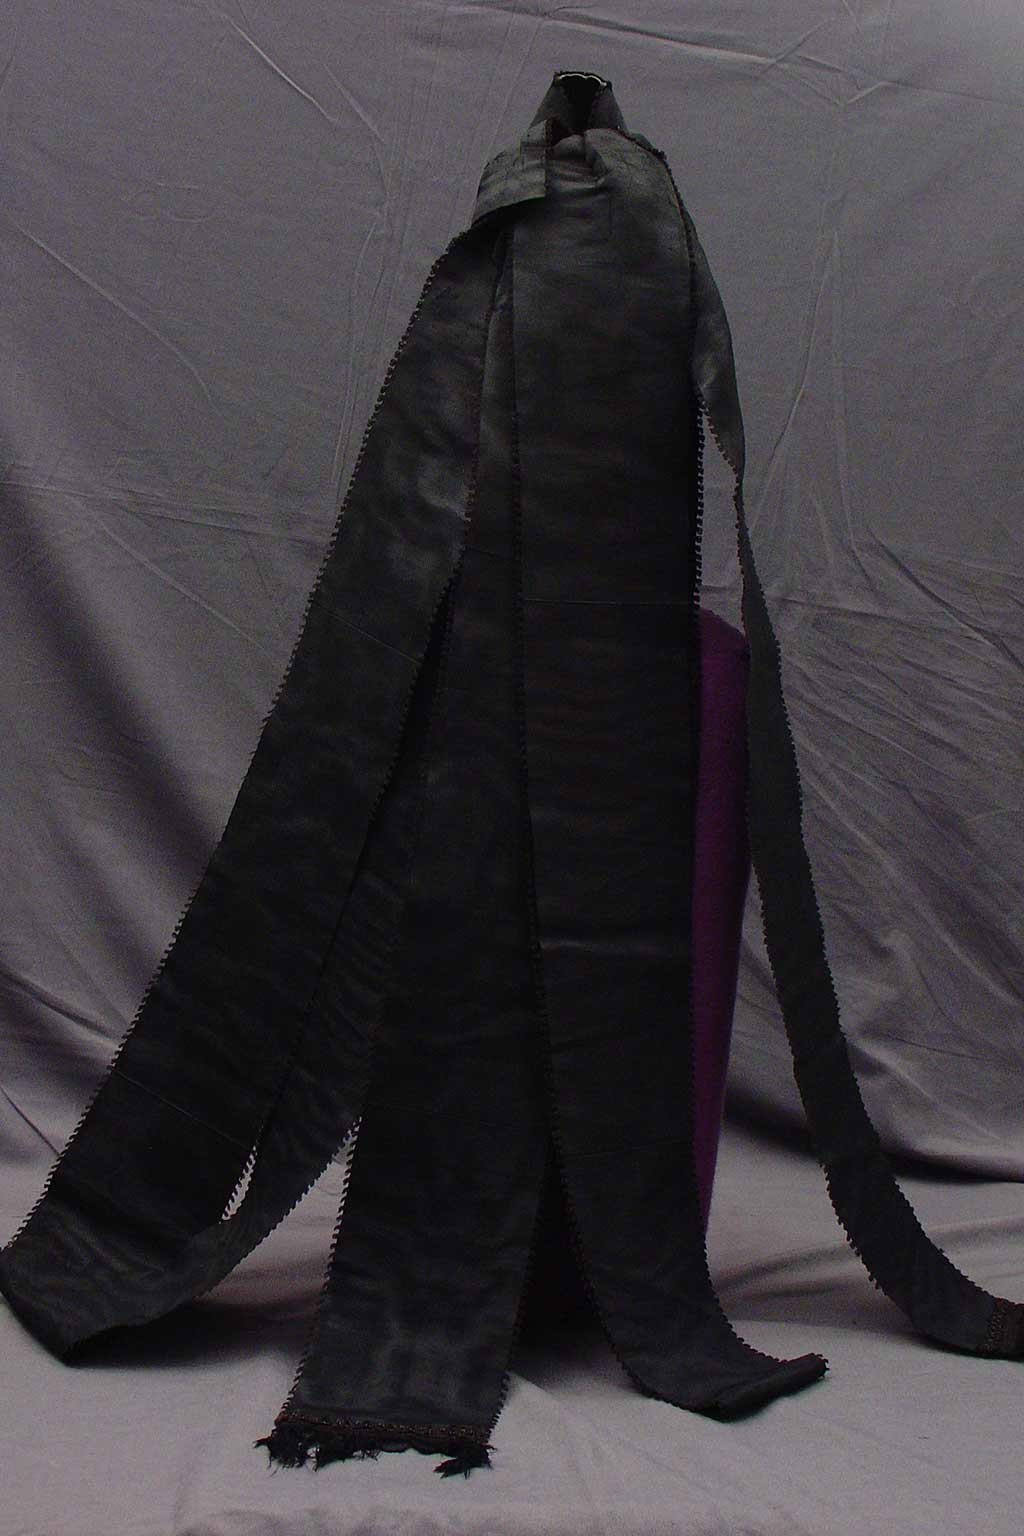 back view, Conical bonnet covered in black silk, with two lengths of the same material doubled and extending down the back.